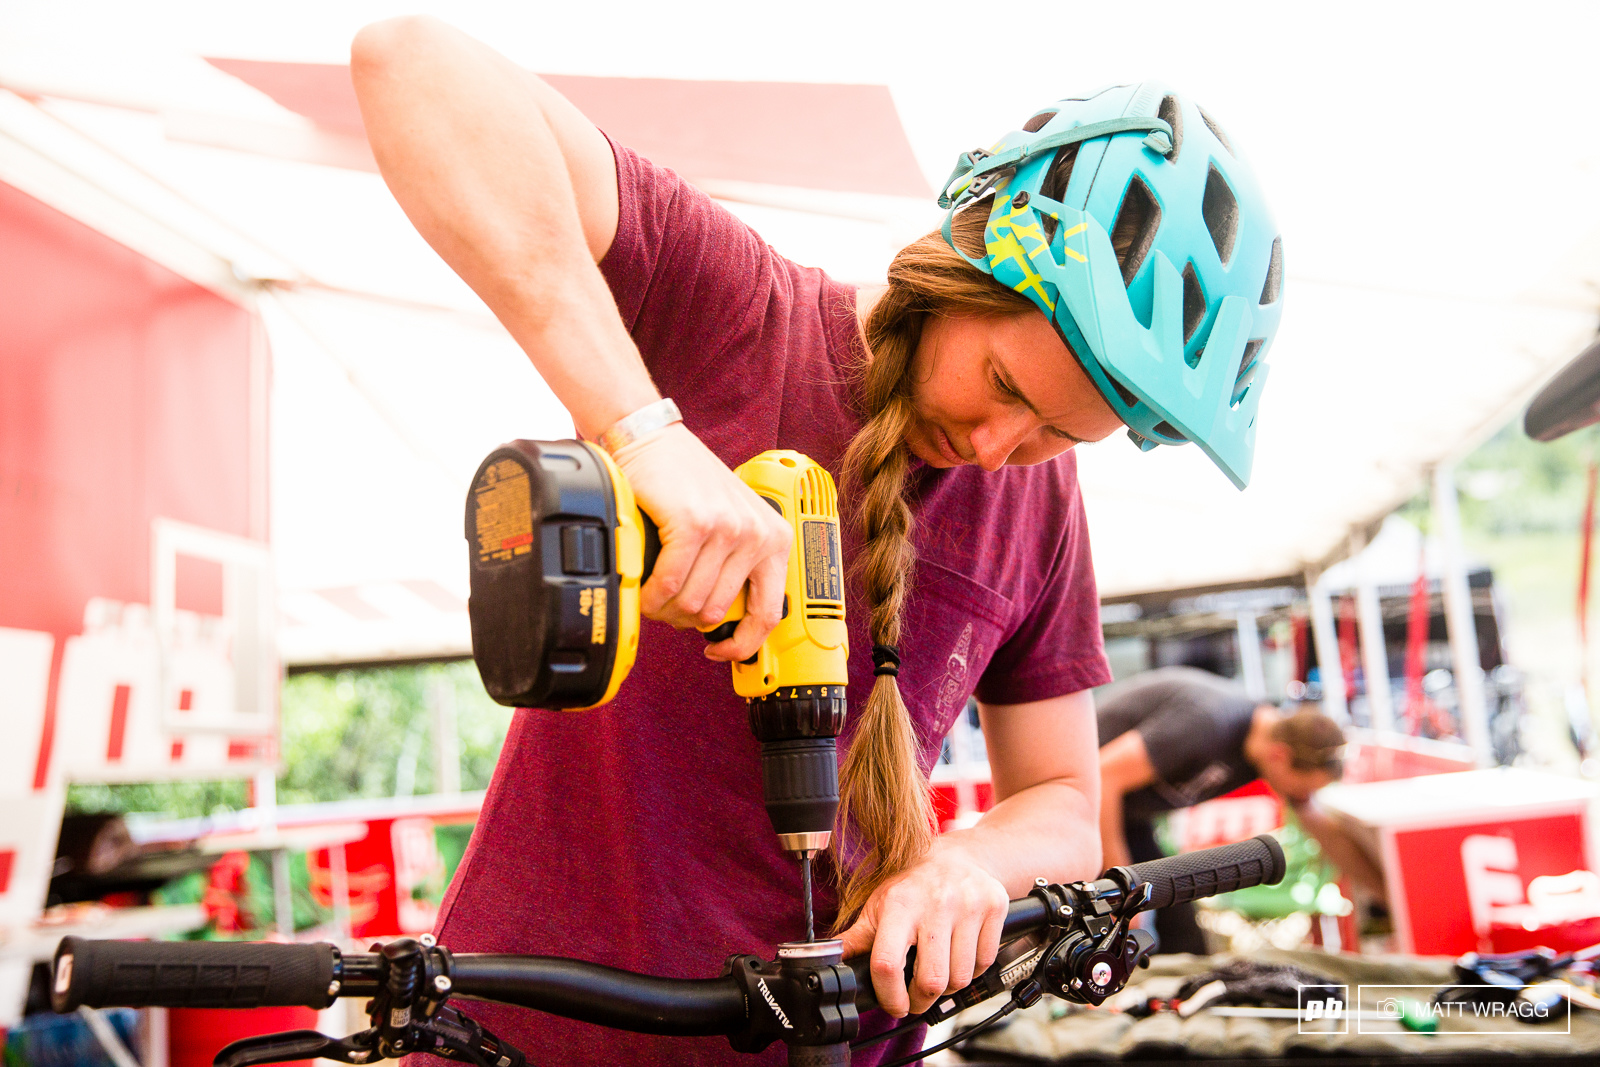 Miranda Miller is more than happy to get stuck in with her bike setup.